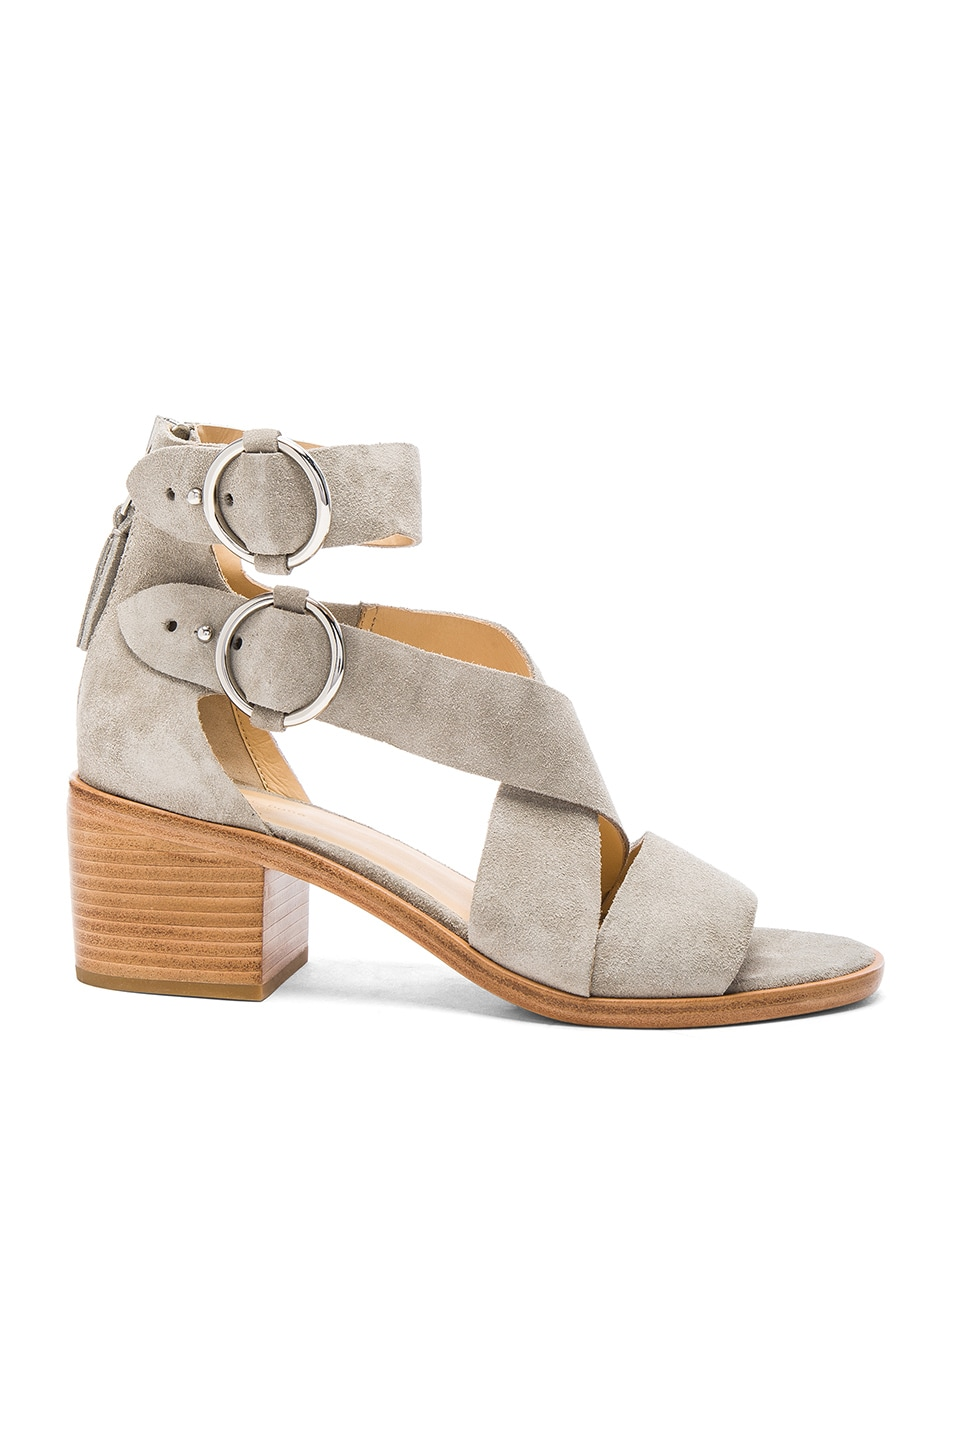 Image 1 of Rag & Bone Suede Mari Sandals in Cement Suede